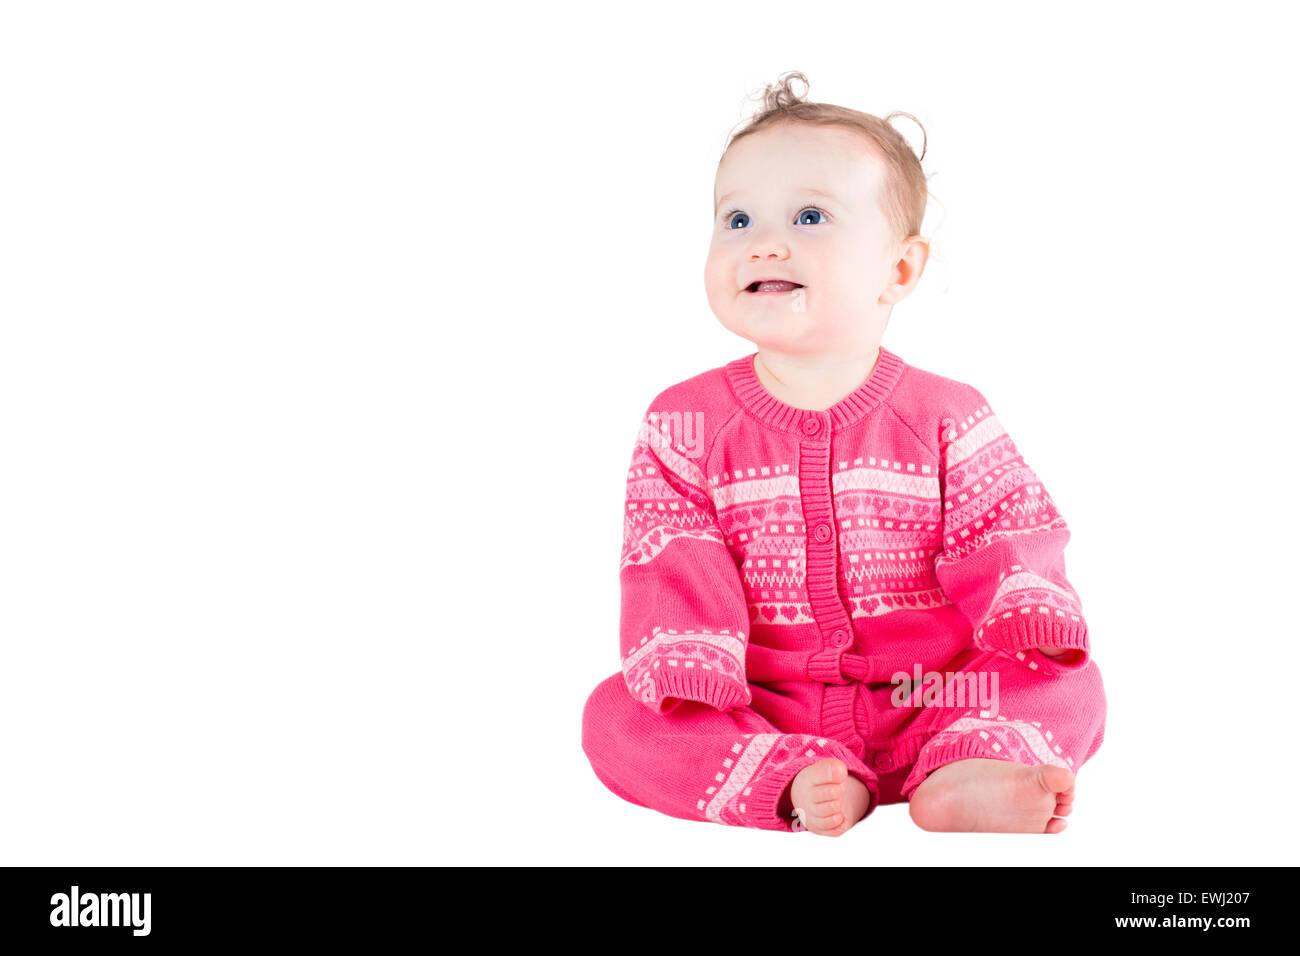 2b3686393 Cute baby girl in a pink knitted sweater with hearts pattern on a ...